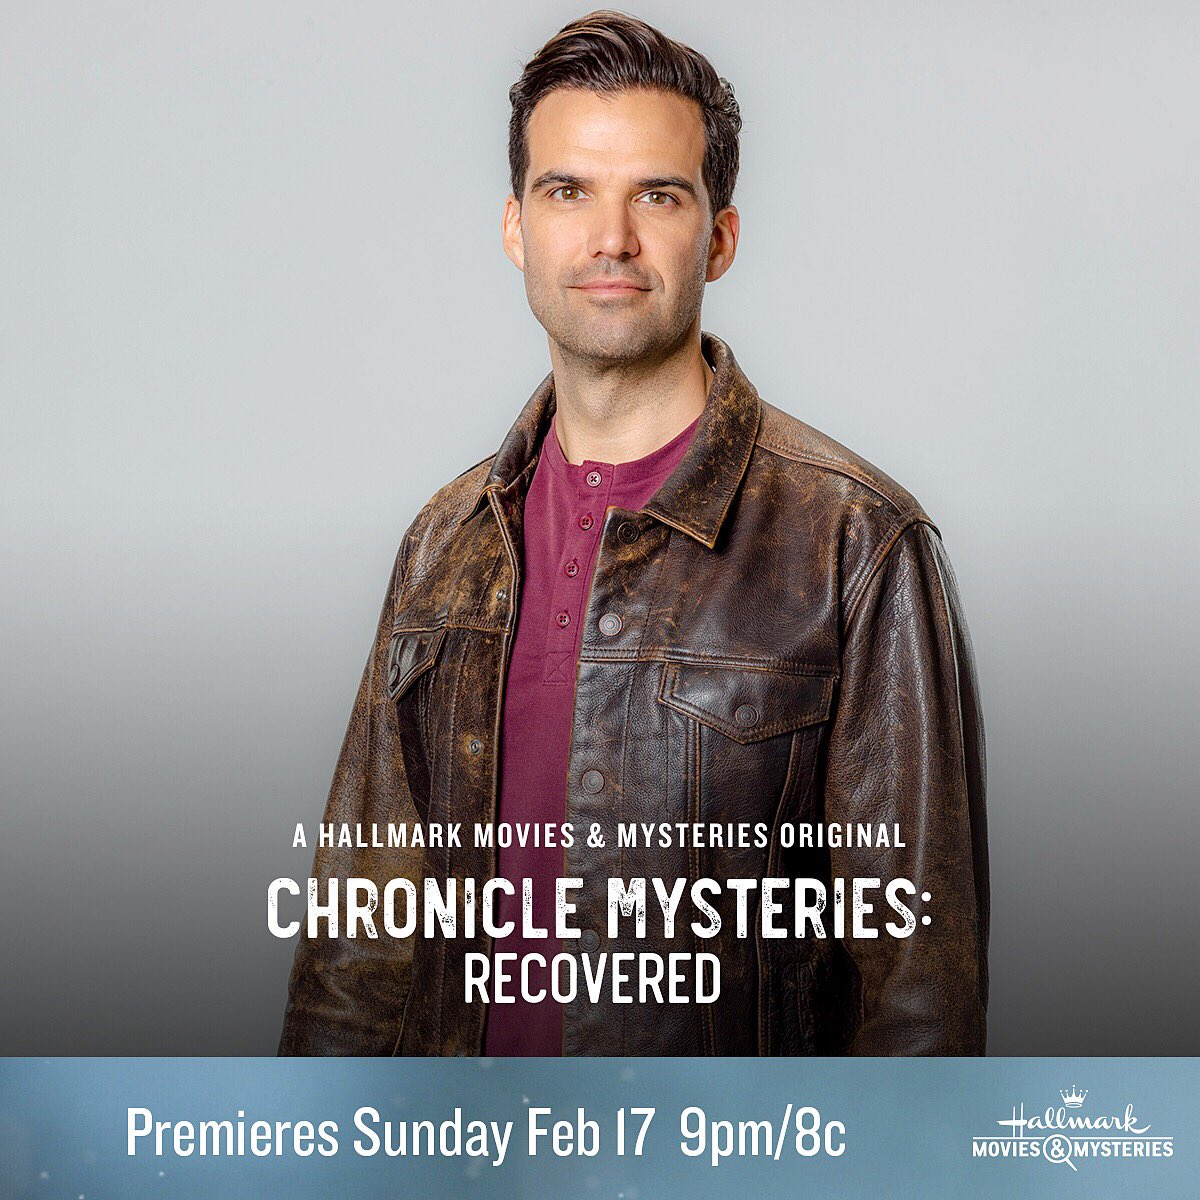 Tune in Sunday night for the first in our trilogy of #ChronicleMysteries movies. Join us as we live tweet during the commercial breaks. Can you solve the mystery before we do?? @Ali_Sweeney @hallmarkmovie @rebeccastaab1 🕵️♀️ 🕵️♂️